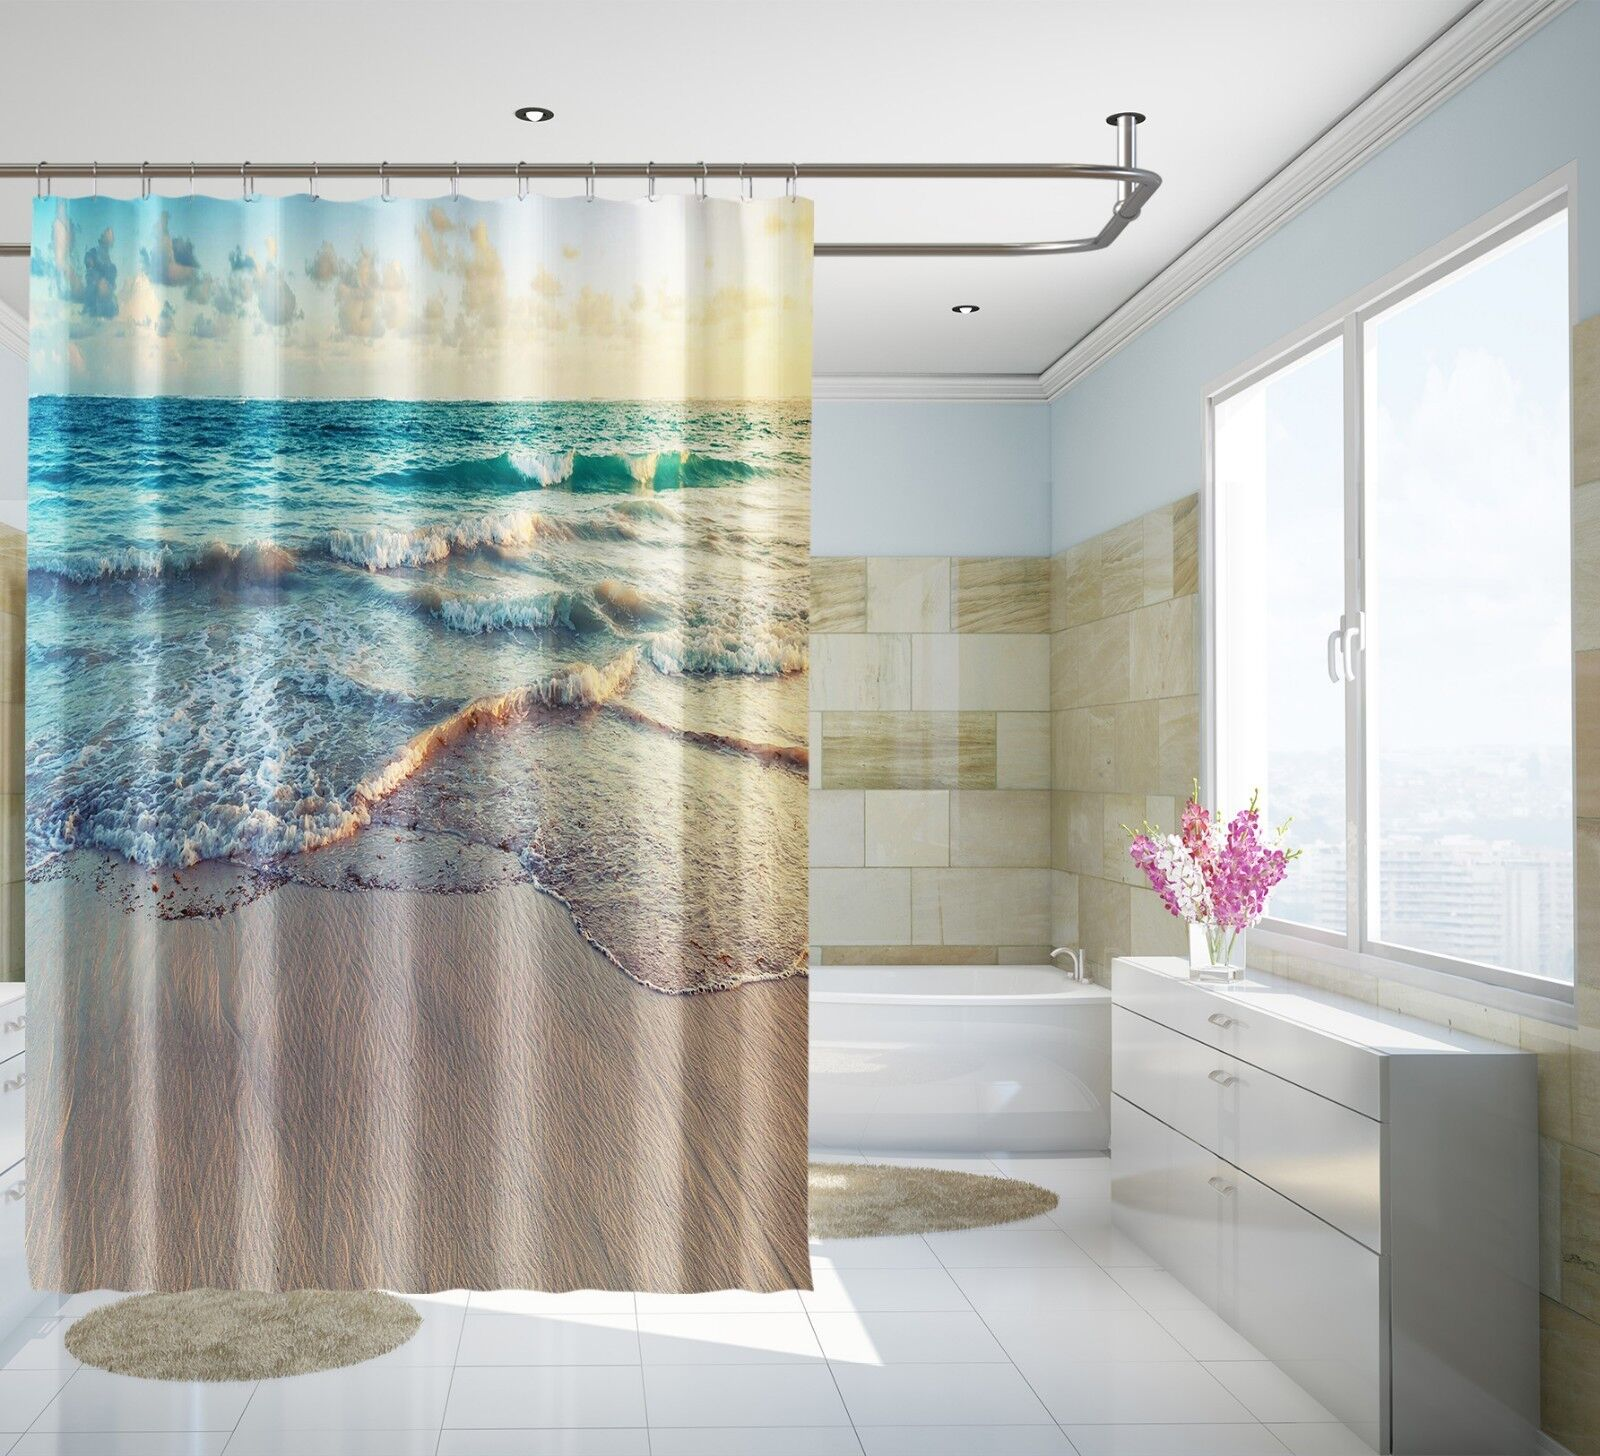 3D Ocean Beach 4343 Rideau de Douche Imperméable Fibre Salle de Bain Home Windows Toilette